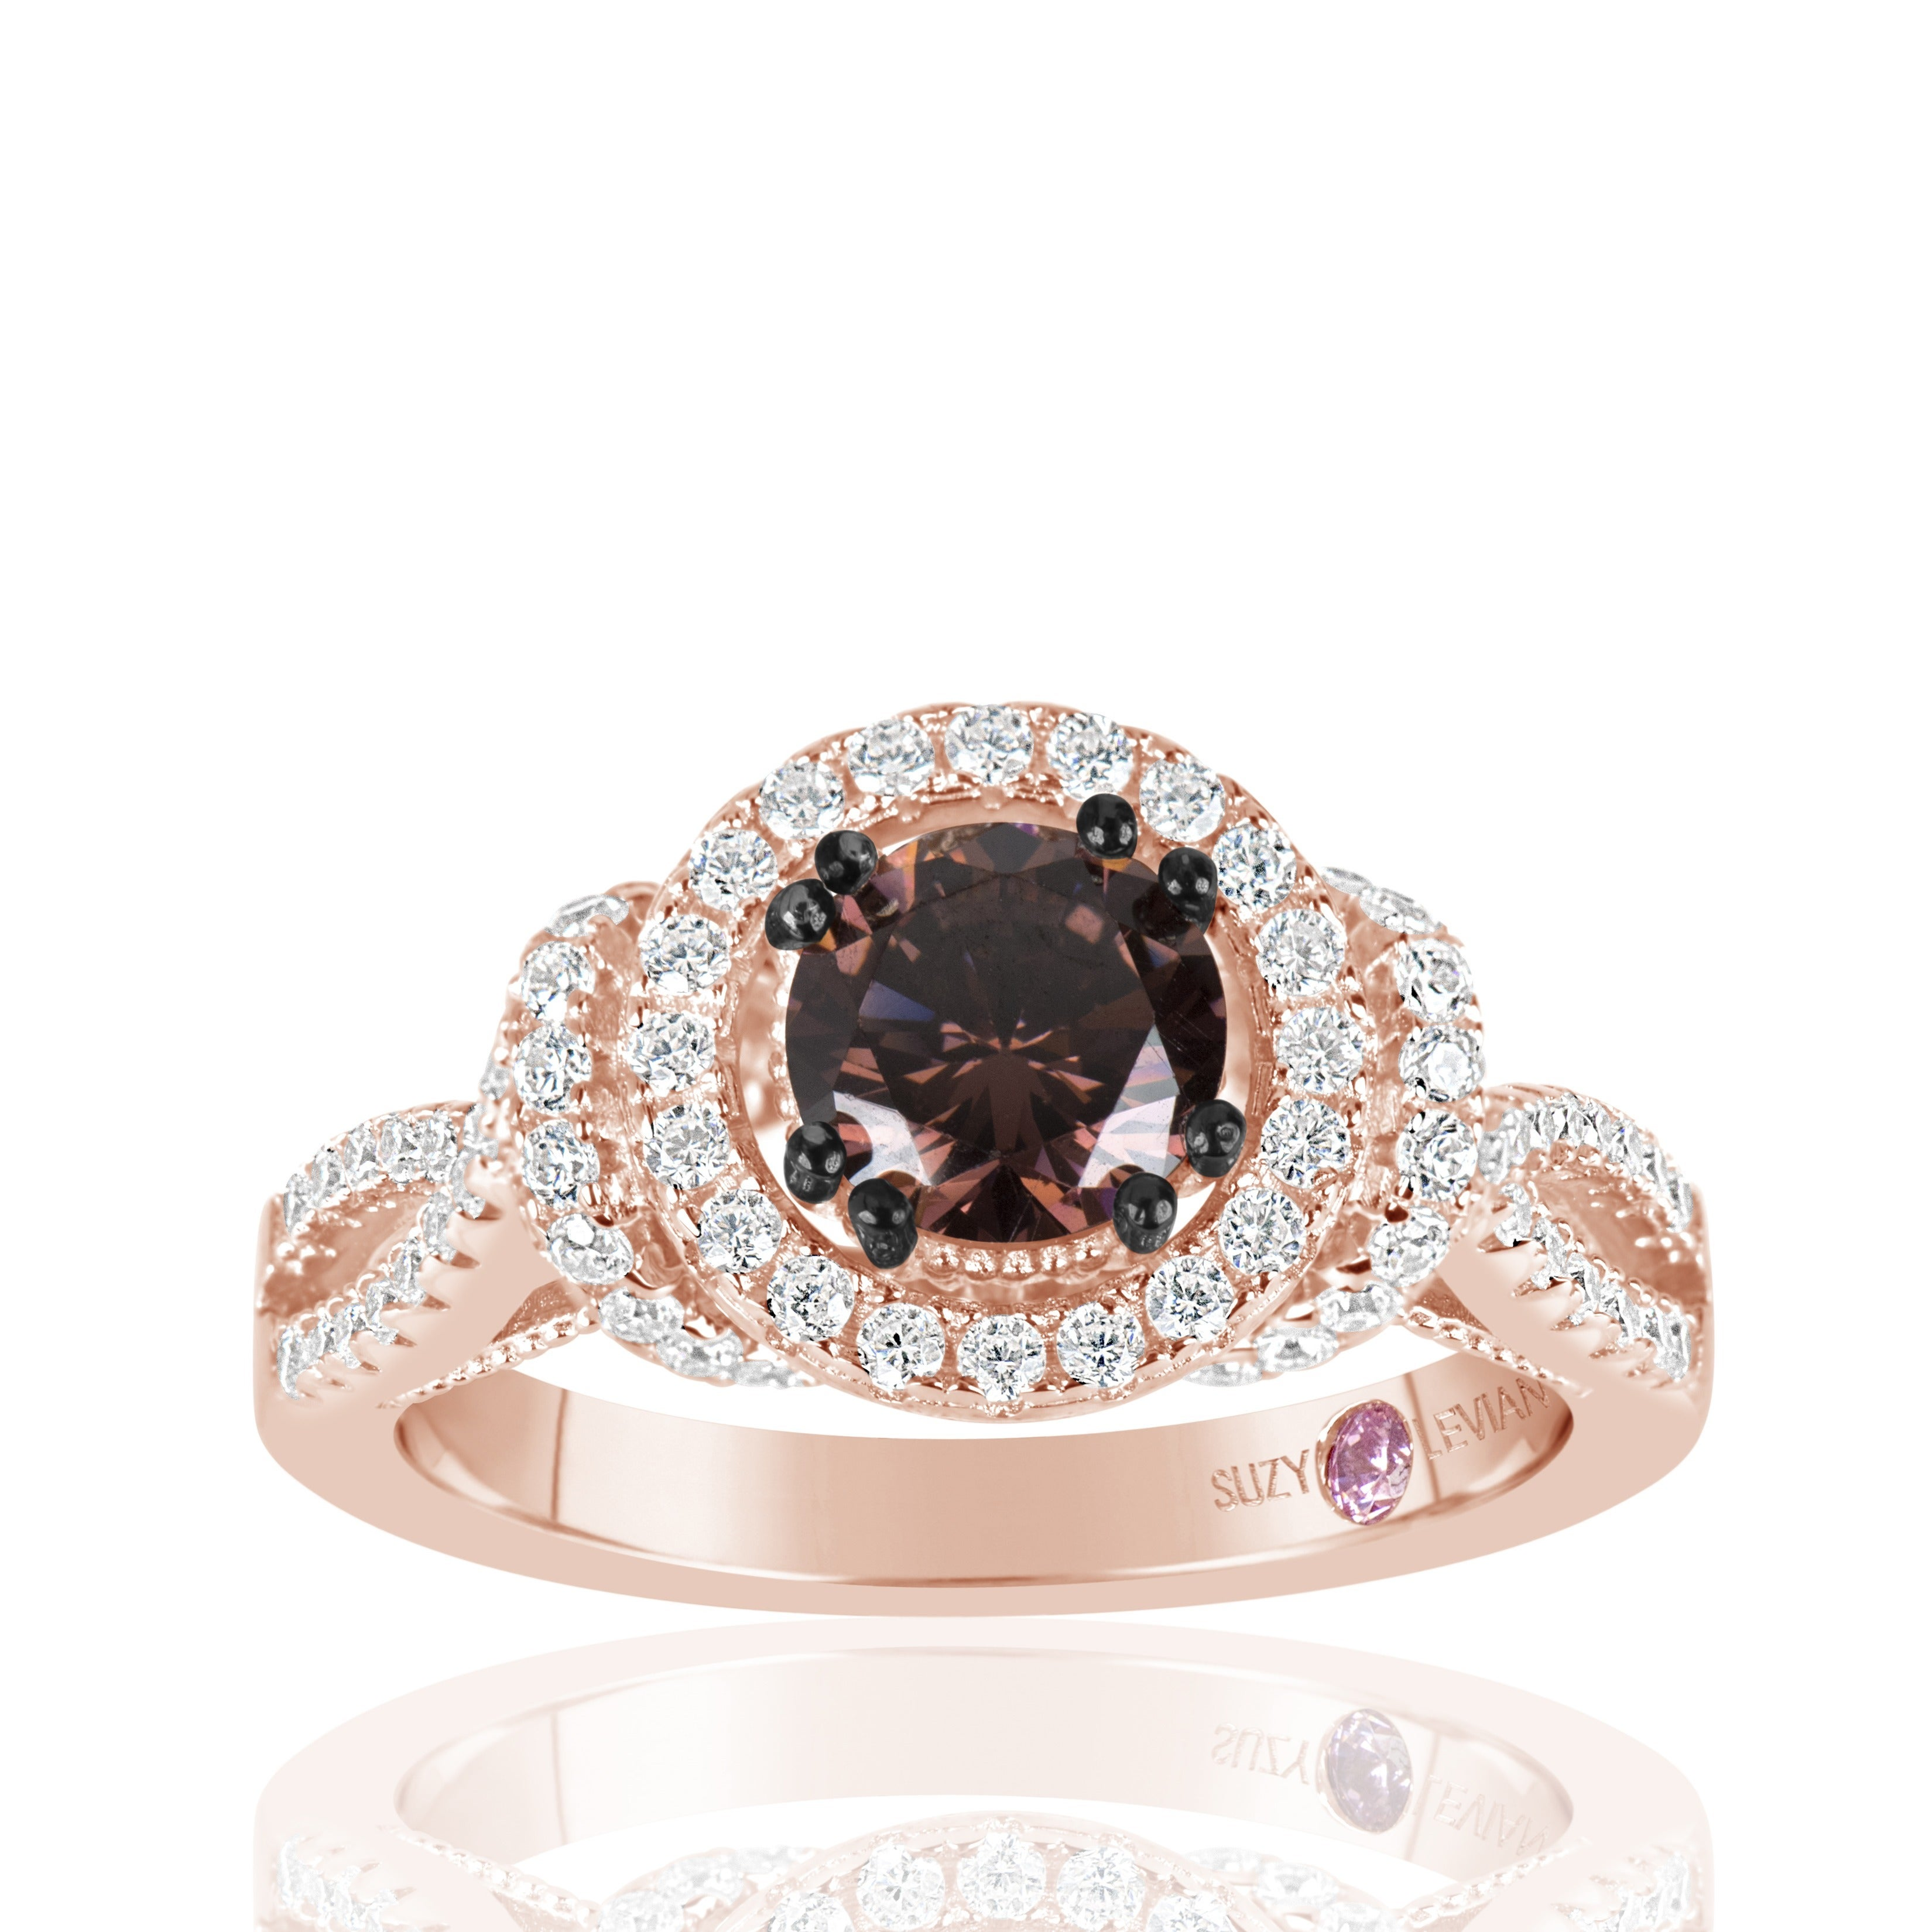 Suzy Levian Rose Sterling Silver Brown Chocolate and Whit...